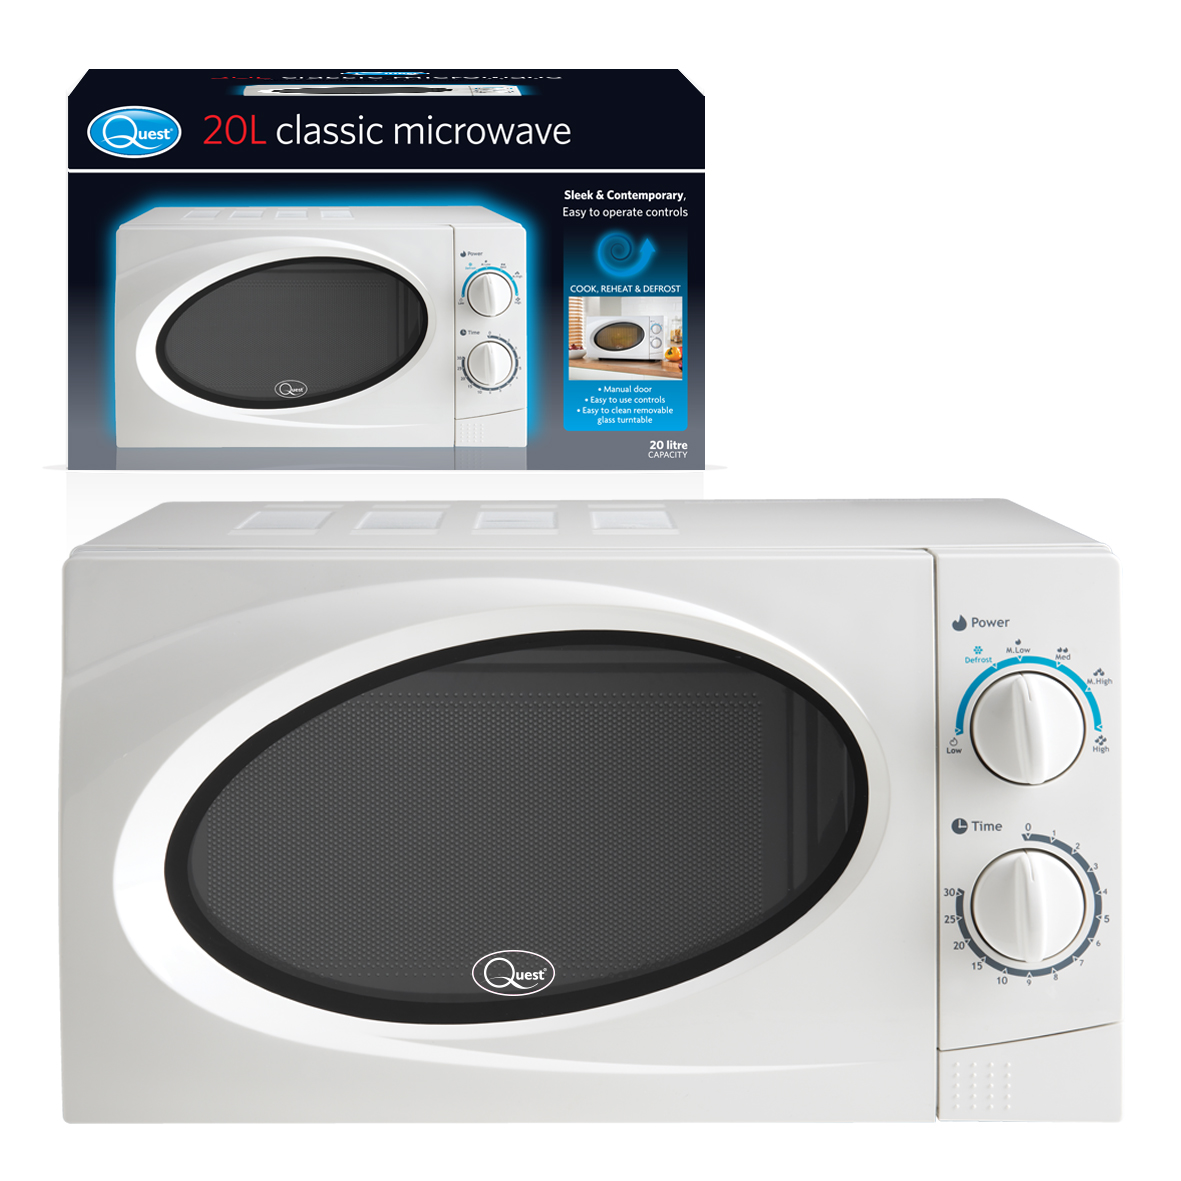 White 20L Classic Microwave and box